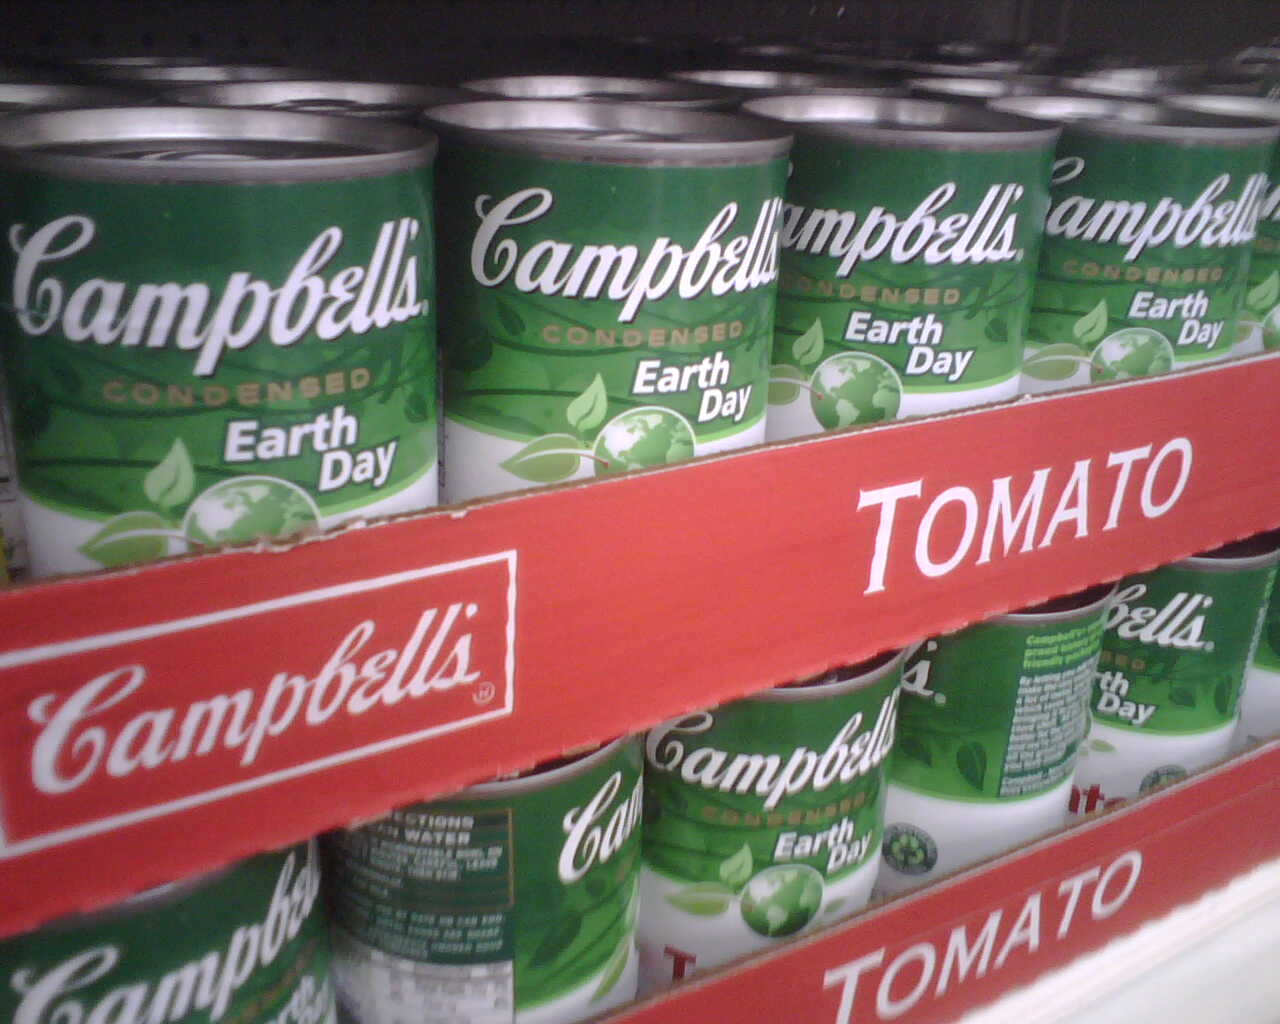 campbell soup green earth day can